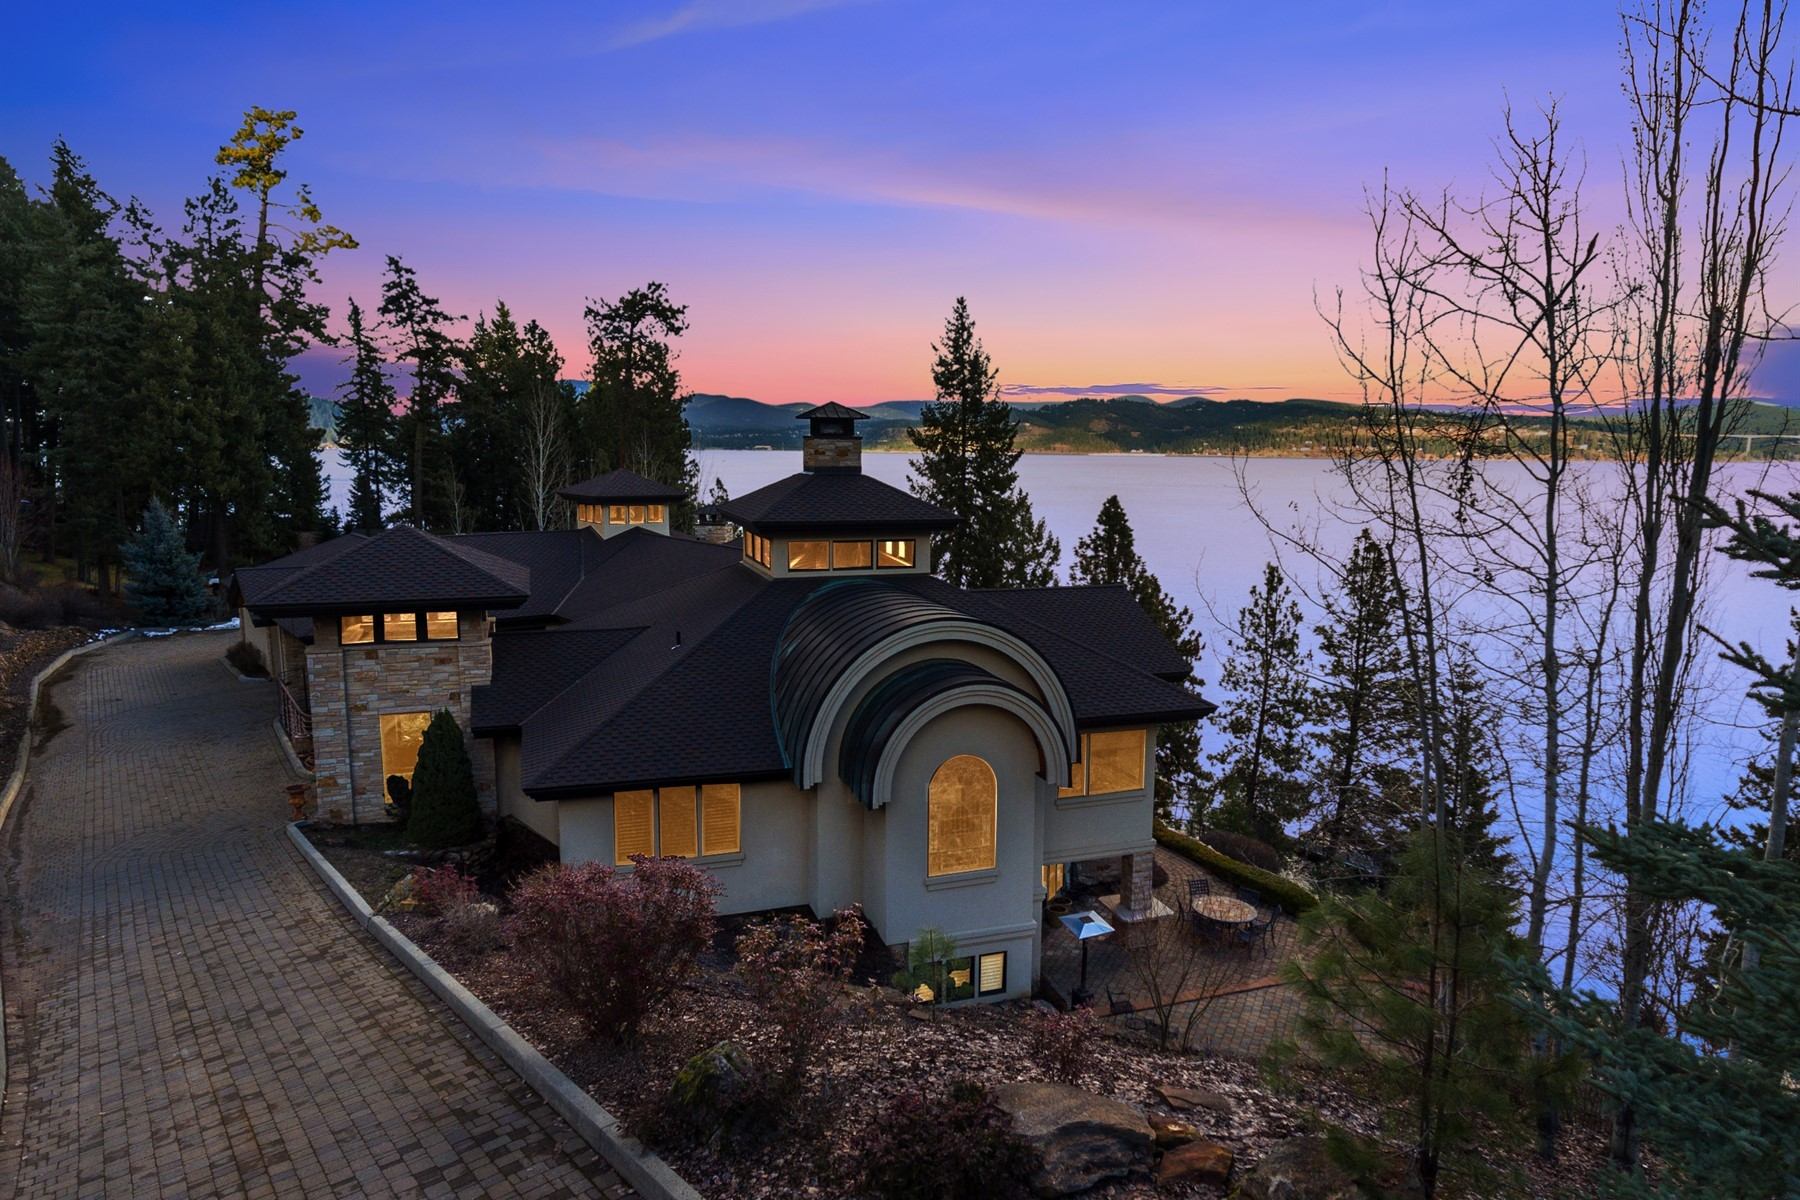 Single Family Homes for Sale at Magical Simple Lake Elegance 4200 S Threemile Point Rd Coeur D Alene, Idaho 83814 United States